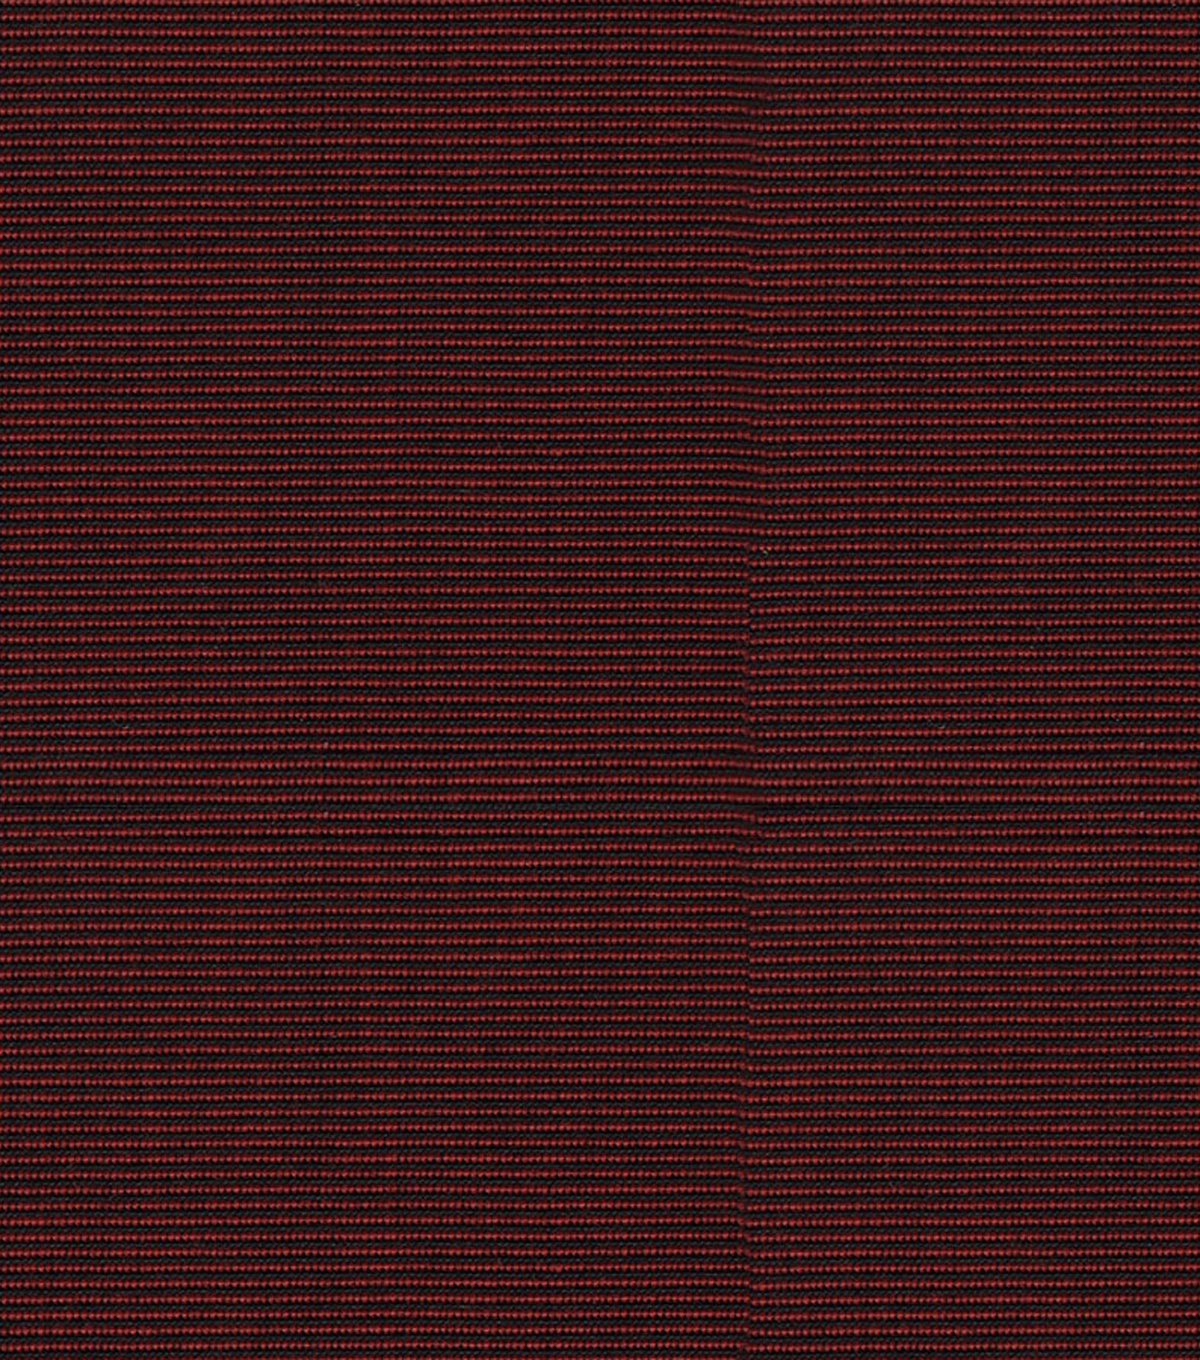 Sunbr 60 6006 Dubonnet Tweed Swatch